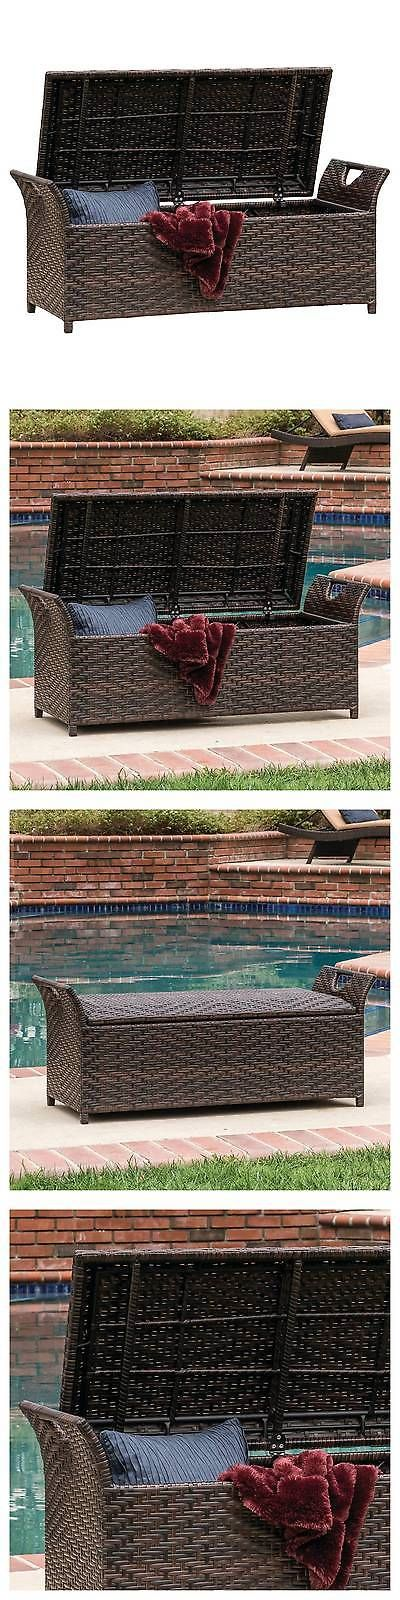 Chairs 79682: Wing Wicker Patio Storage Bench - Multi Brown - Christopher Knight Home -> BUY IT NOW ONLY: $143.99 on eBay!